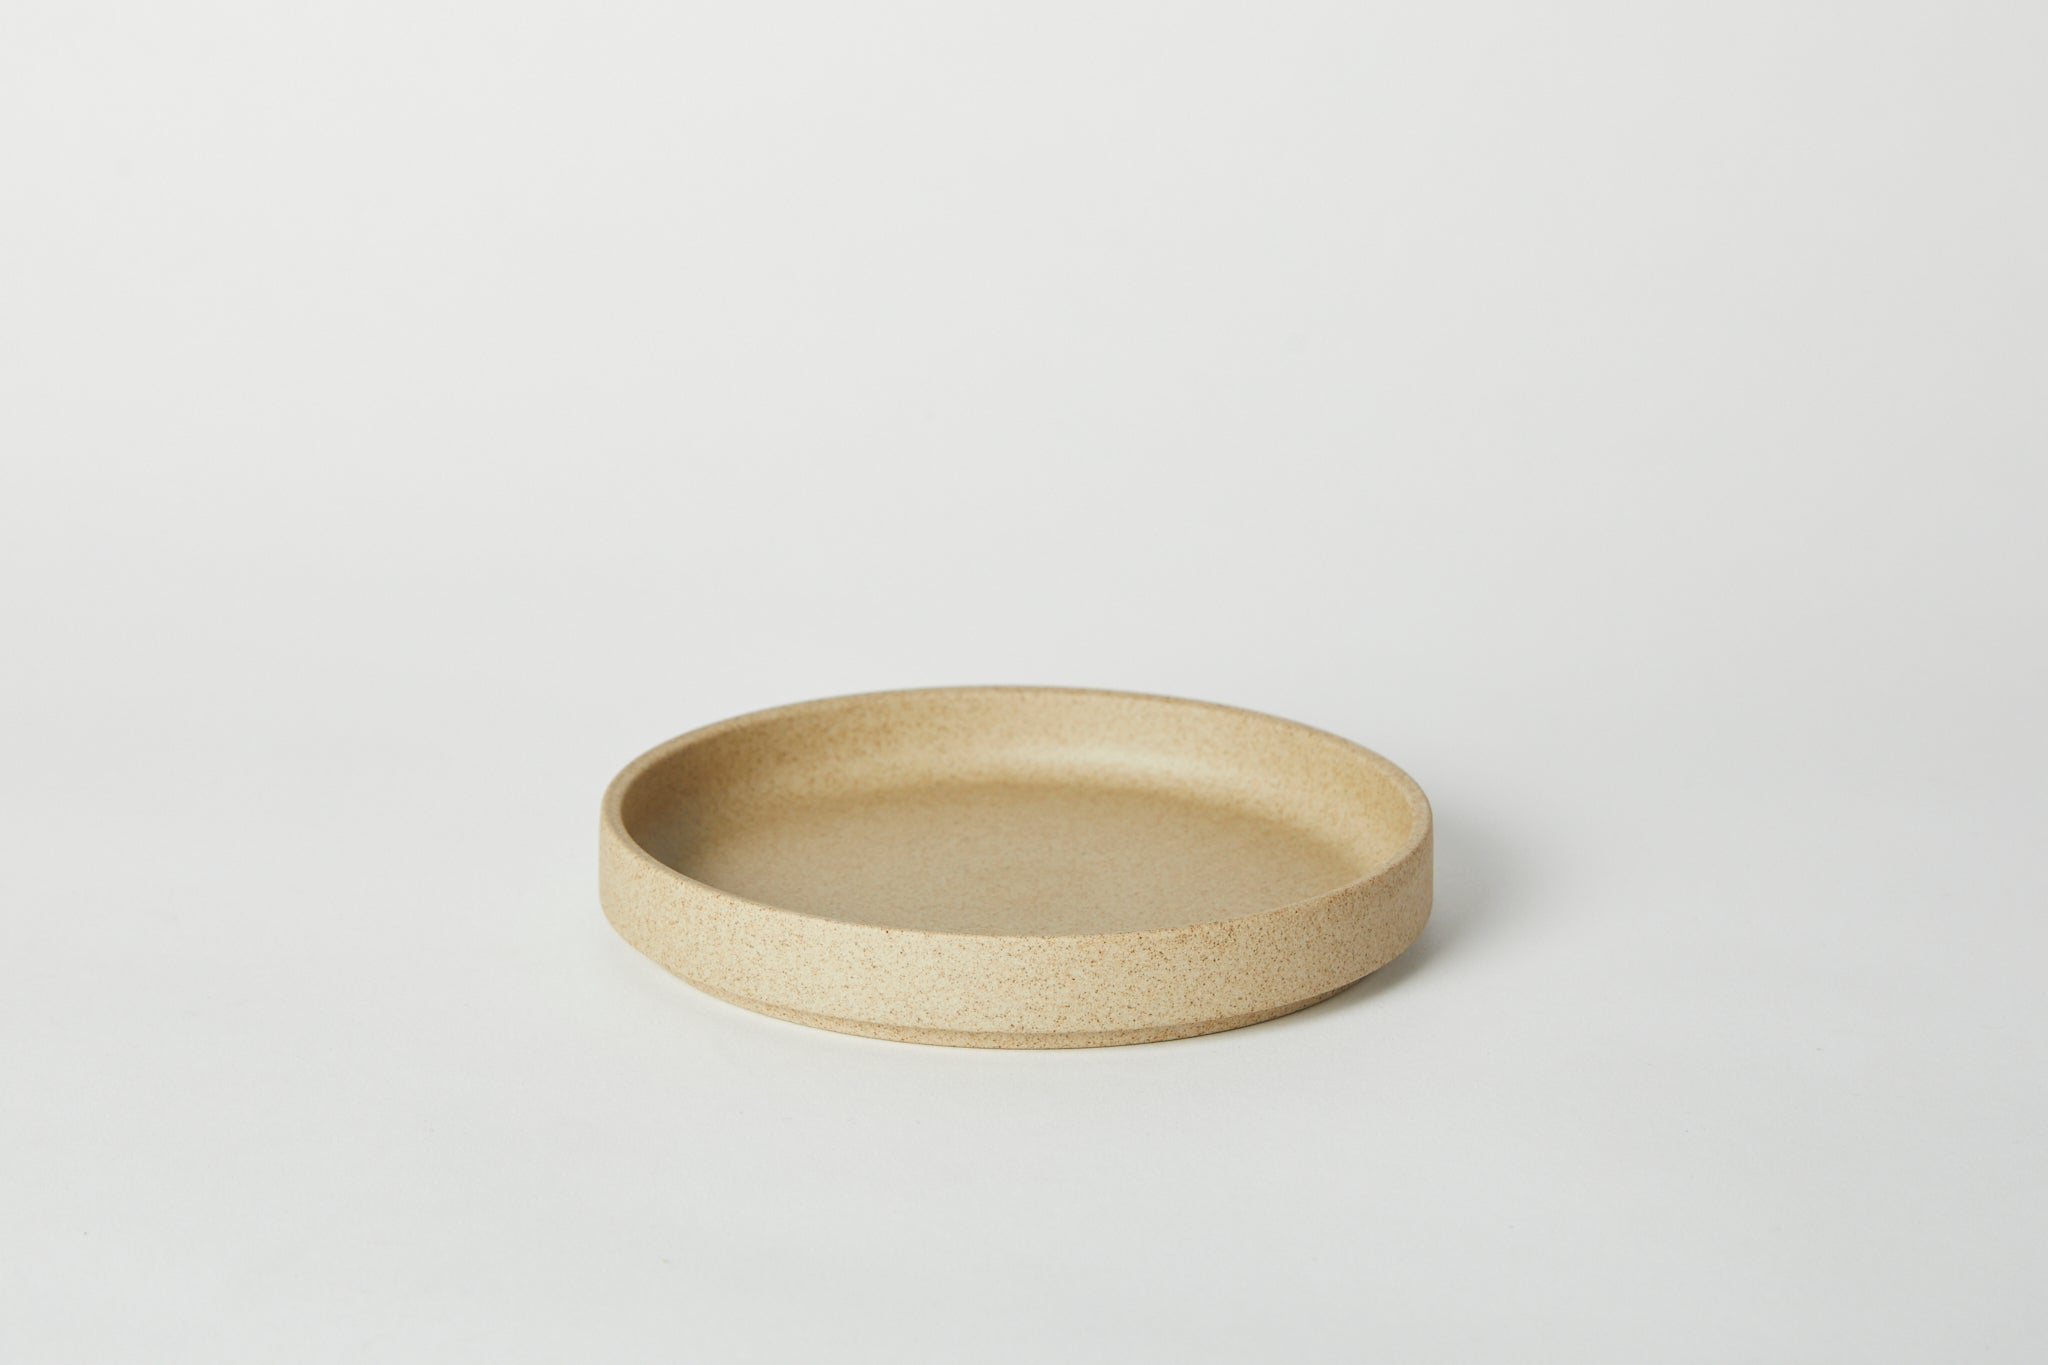 Natural Plate 02